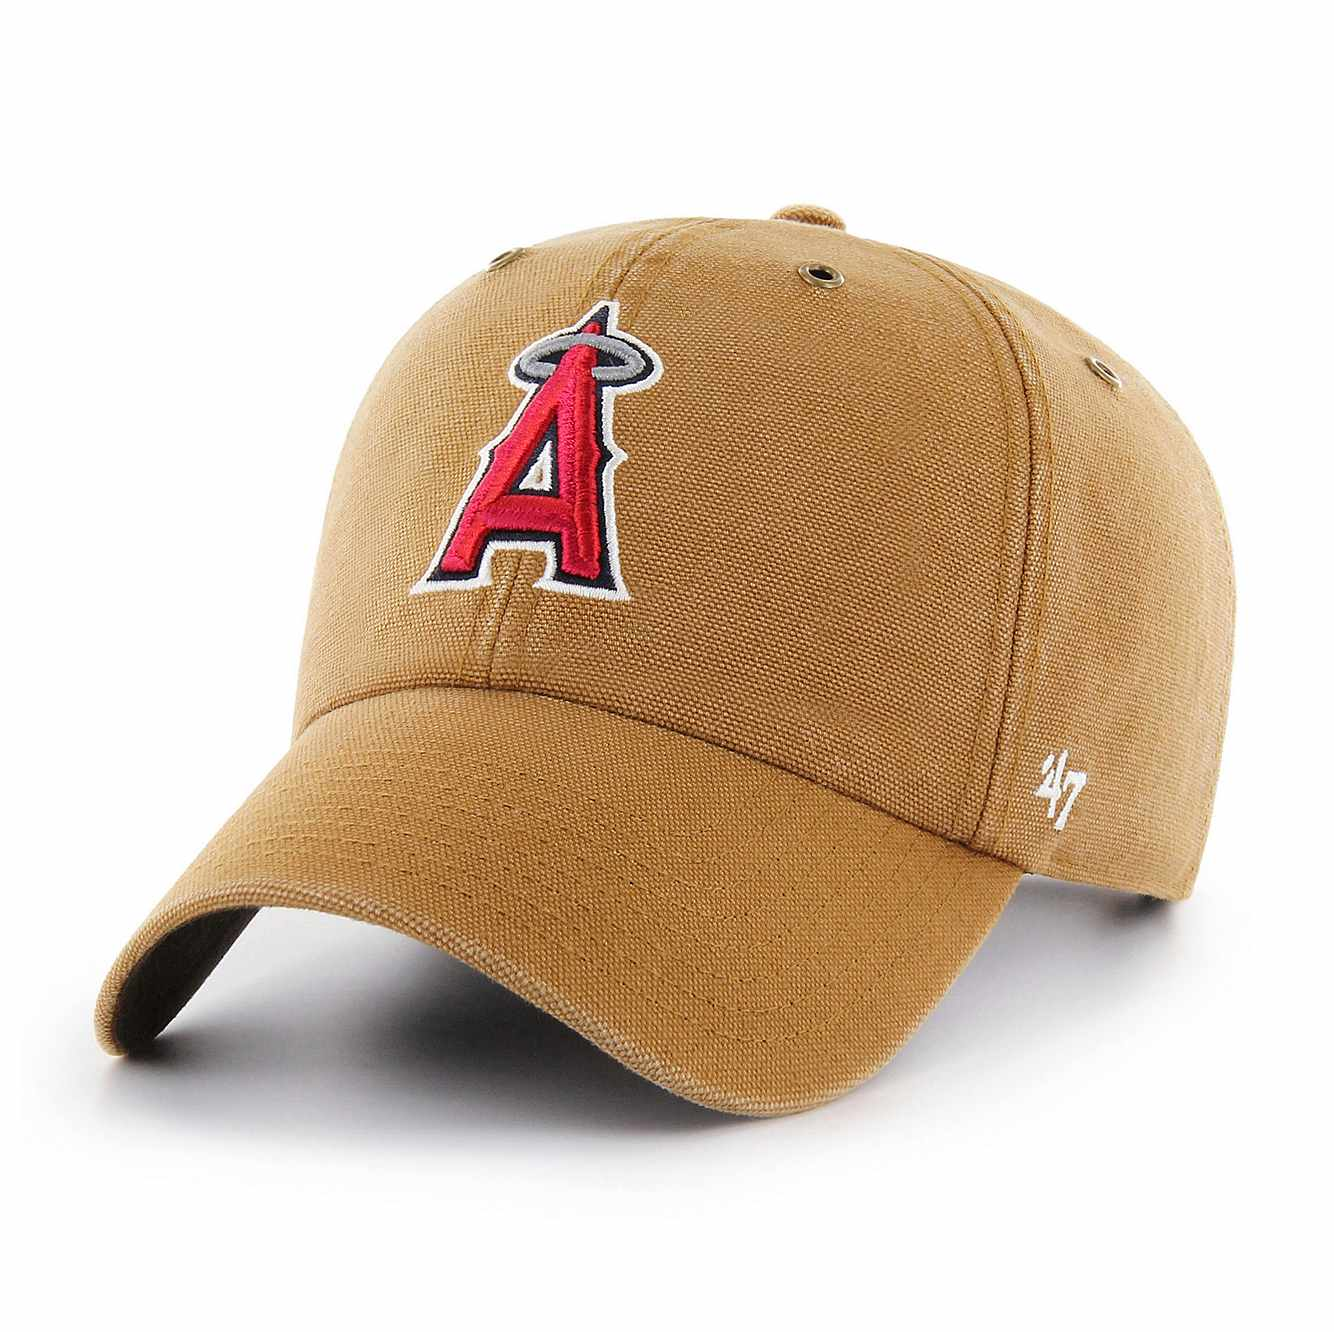 Picture of Los Angeles Angels Carhartt x '47 Clean Up in Carhartt Brown